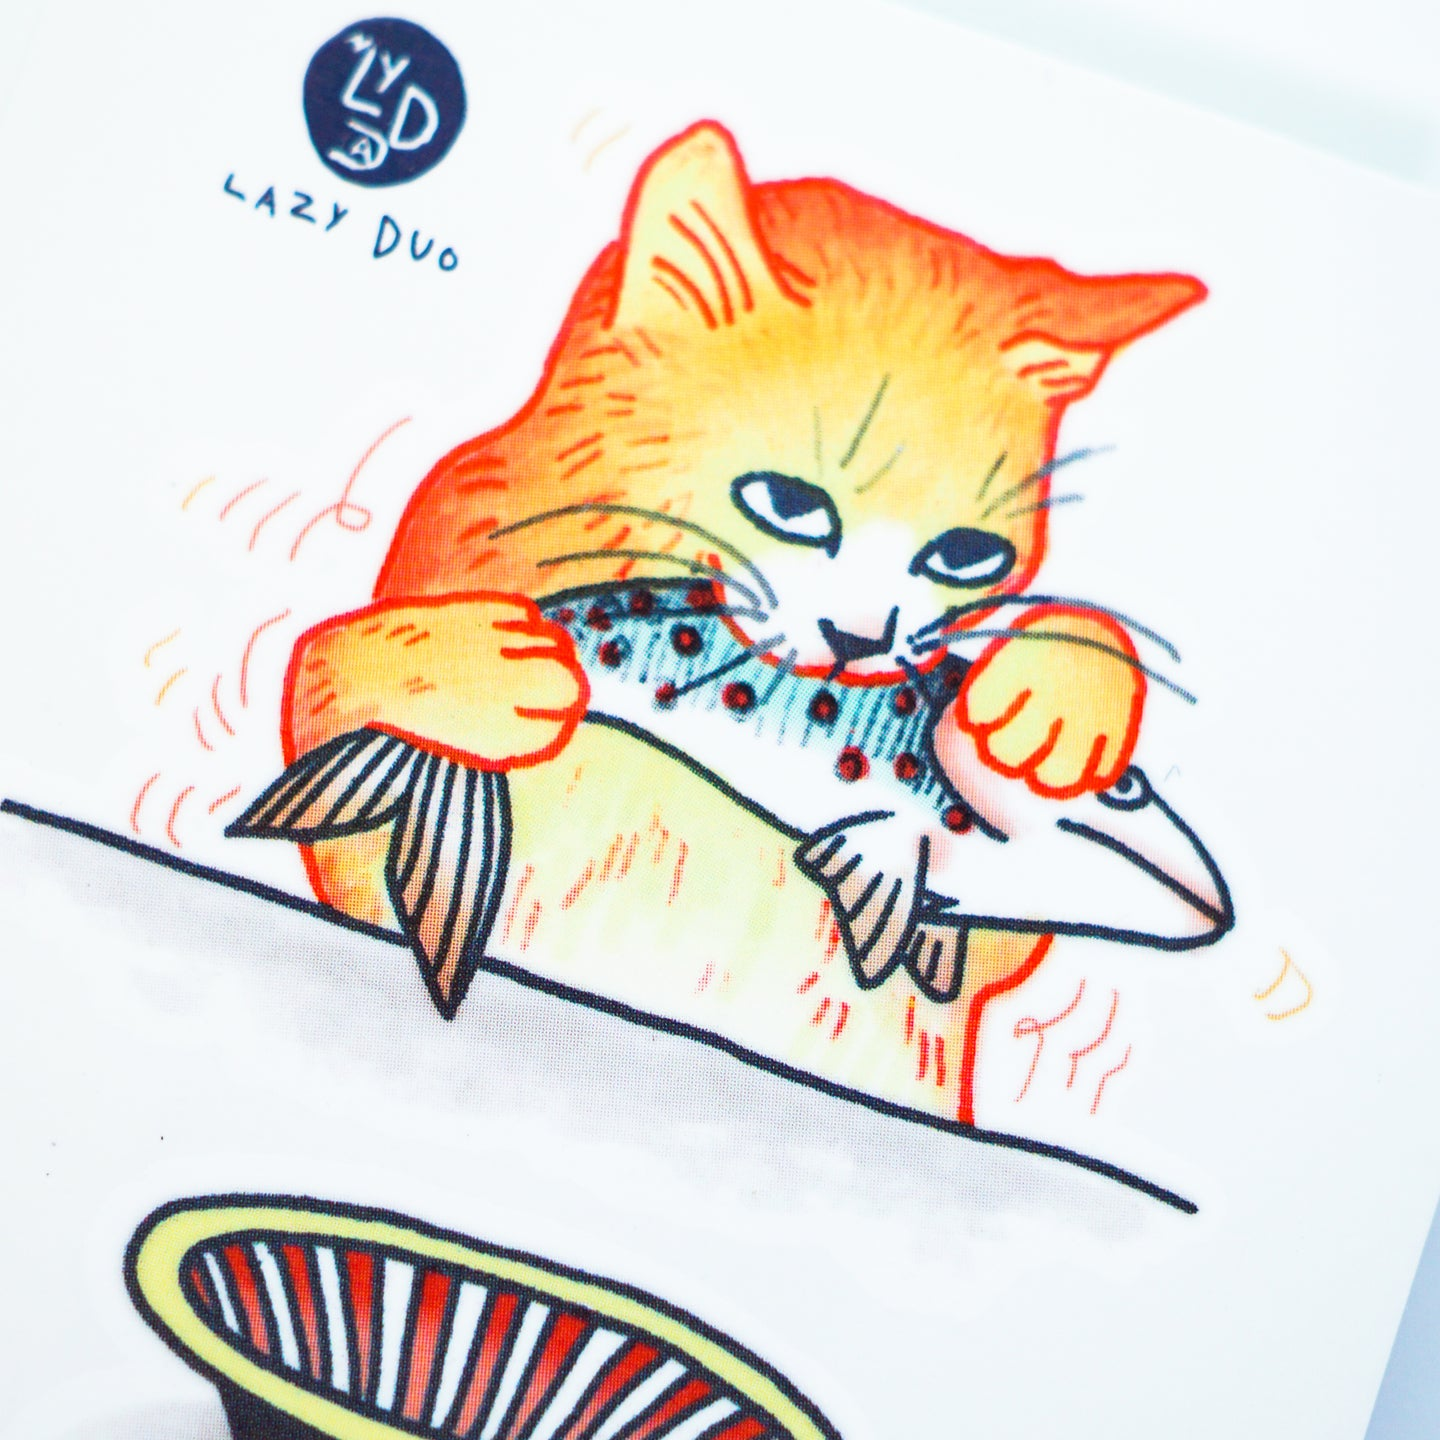 Cat Loves Fish Tattoo - LAZY DUO TATTOLife of Cat Feeding Tattoo Ideas Golden Kitten Tattoo Meow Naughty Cat Neko Tattoos HK Temporary Tattoo Sticker Water Color Tattoo LAZY DUO Tattoo Shop Hong Kong HK 愛玩百厭貓紋身黃貓浪浪喵寵物刺青 浪浪香港紋身貼紙刺青紋身師設計印刷訂做客製 Custom Temporary Tattoo Event Printing Tattooist artist HK tattoo shop MANE INK Tattooer Tattoo Artist Taiwan fine line ornament tattoo 台灣製 刺青師紋身師 O